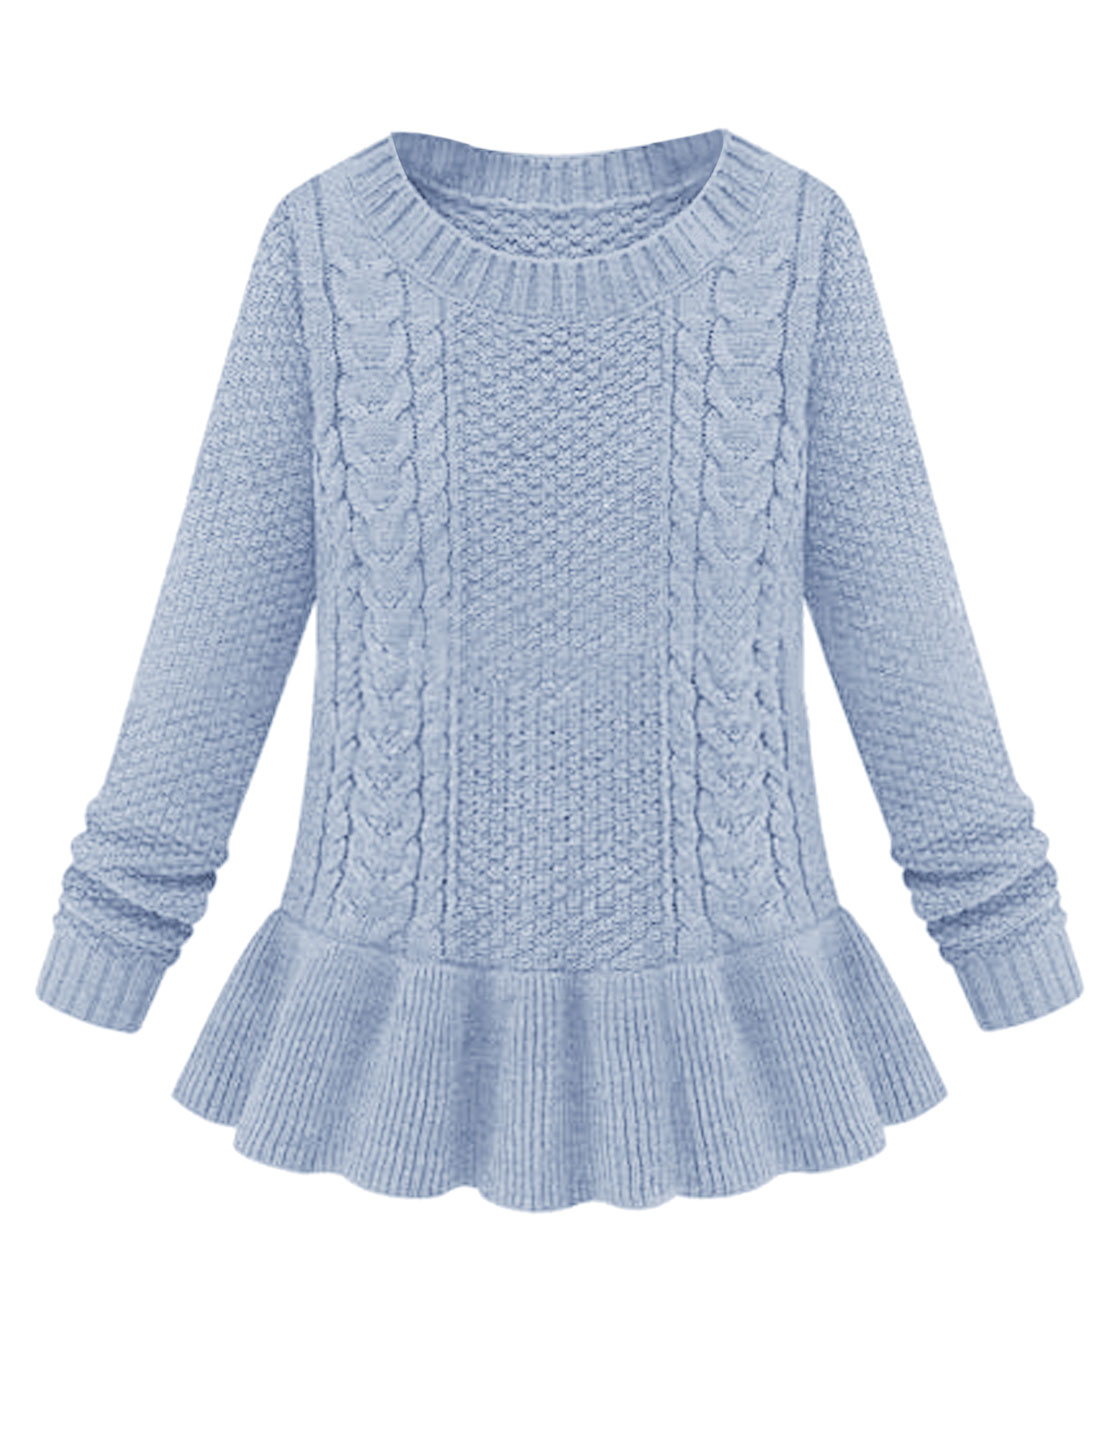 New Style Slipover Round Neck Leisure Peplum Sweater Light Blue M